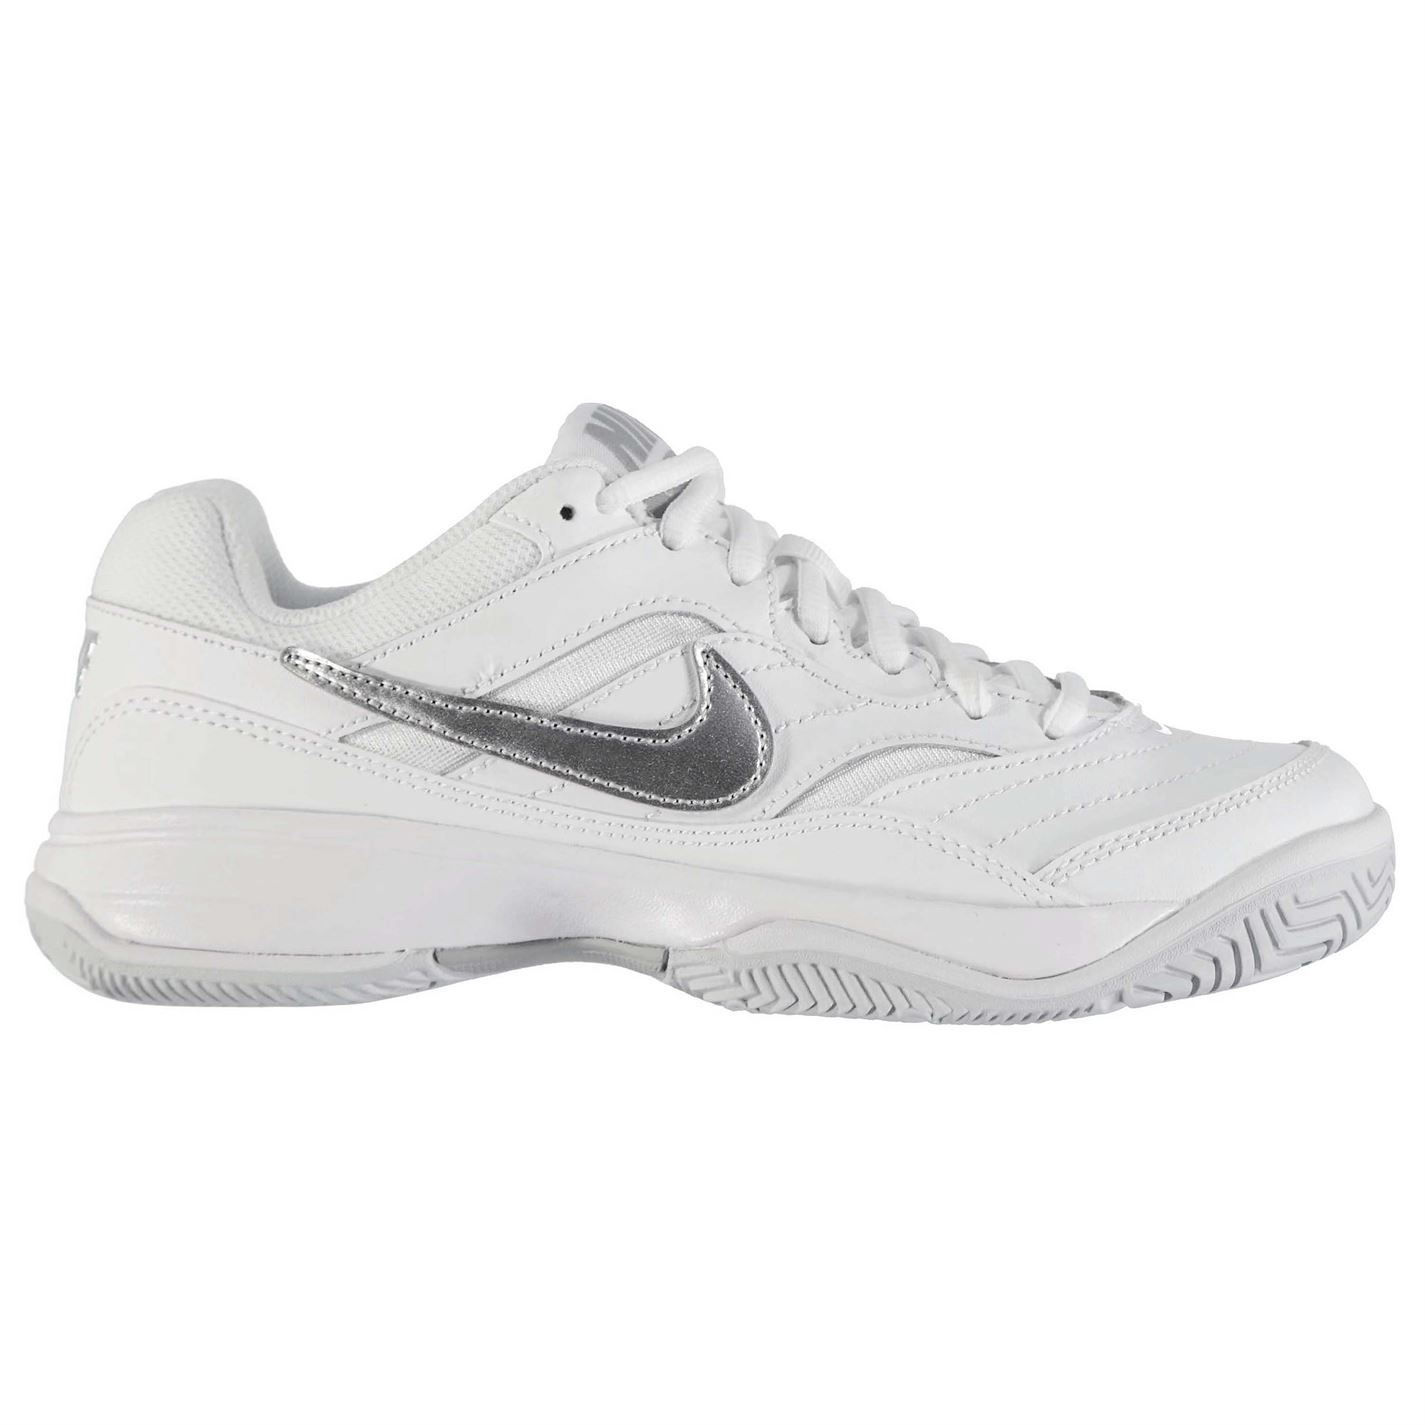 cad7e922cd0d ... Nike Court Lite Tennis Shoes Womens White Silver Sports Trainers  Sneakers ...